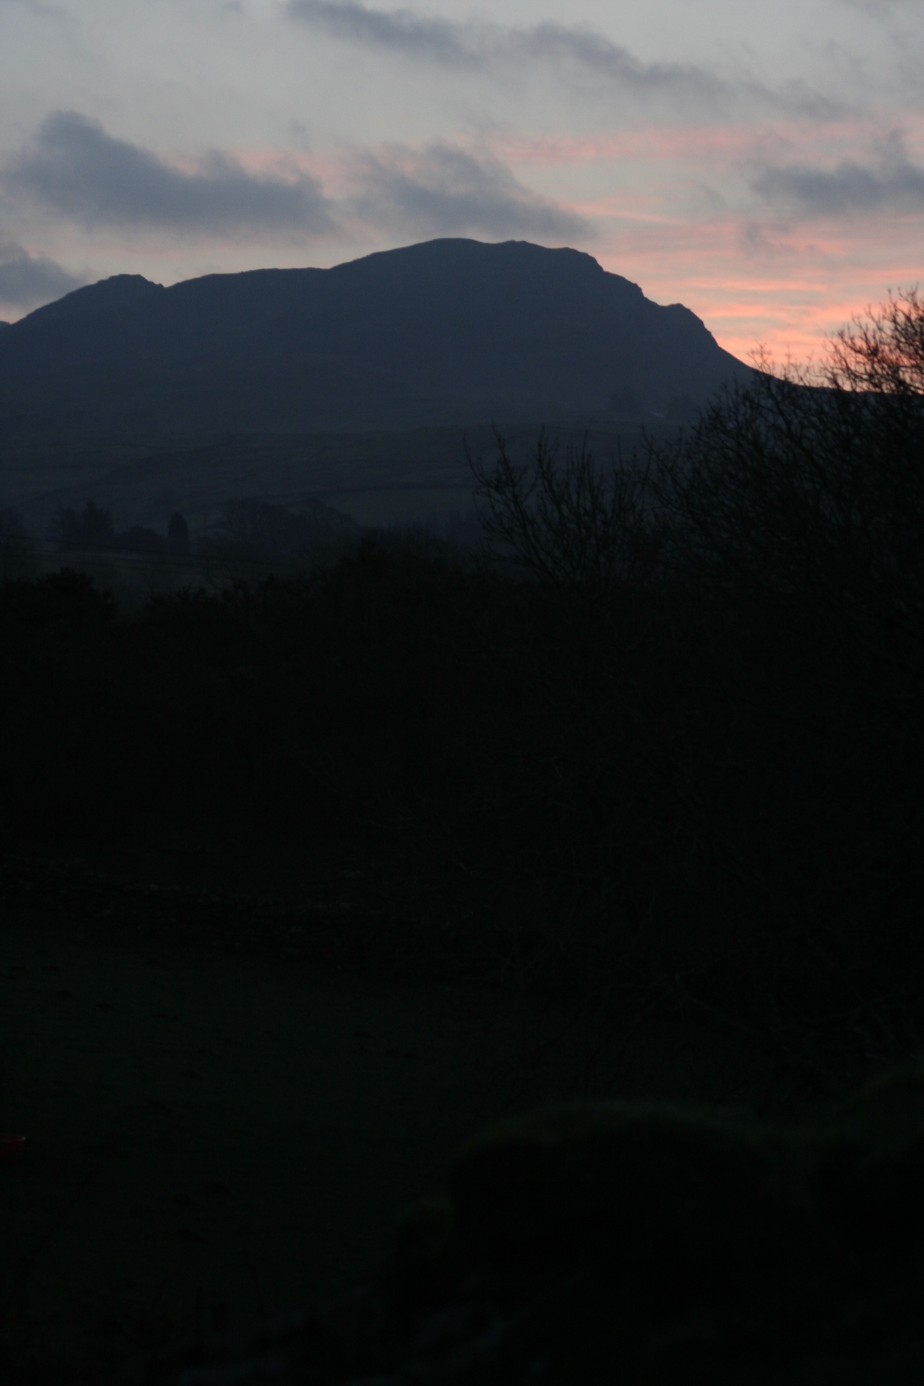 Sunrise at Ffestiniog